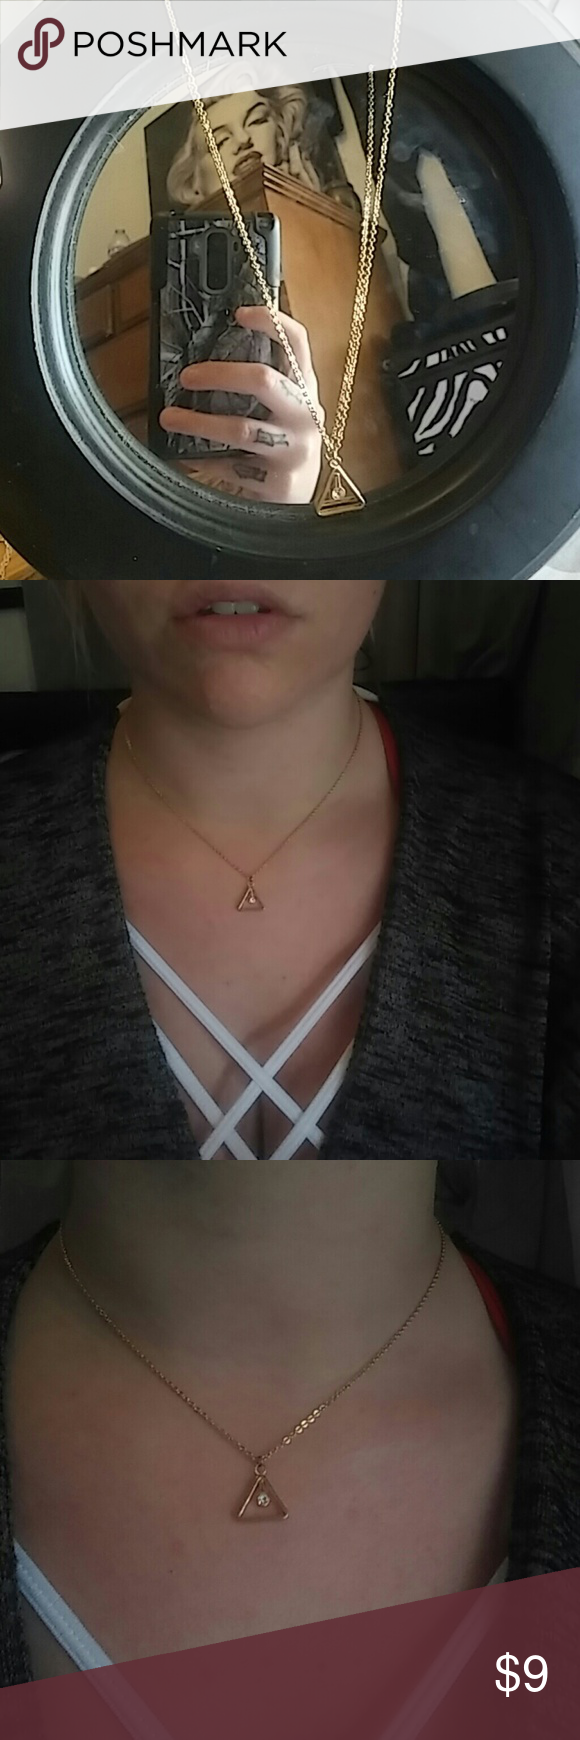 Necklace Gold, triangle with jewel in the center Jewelry Necklaces